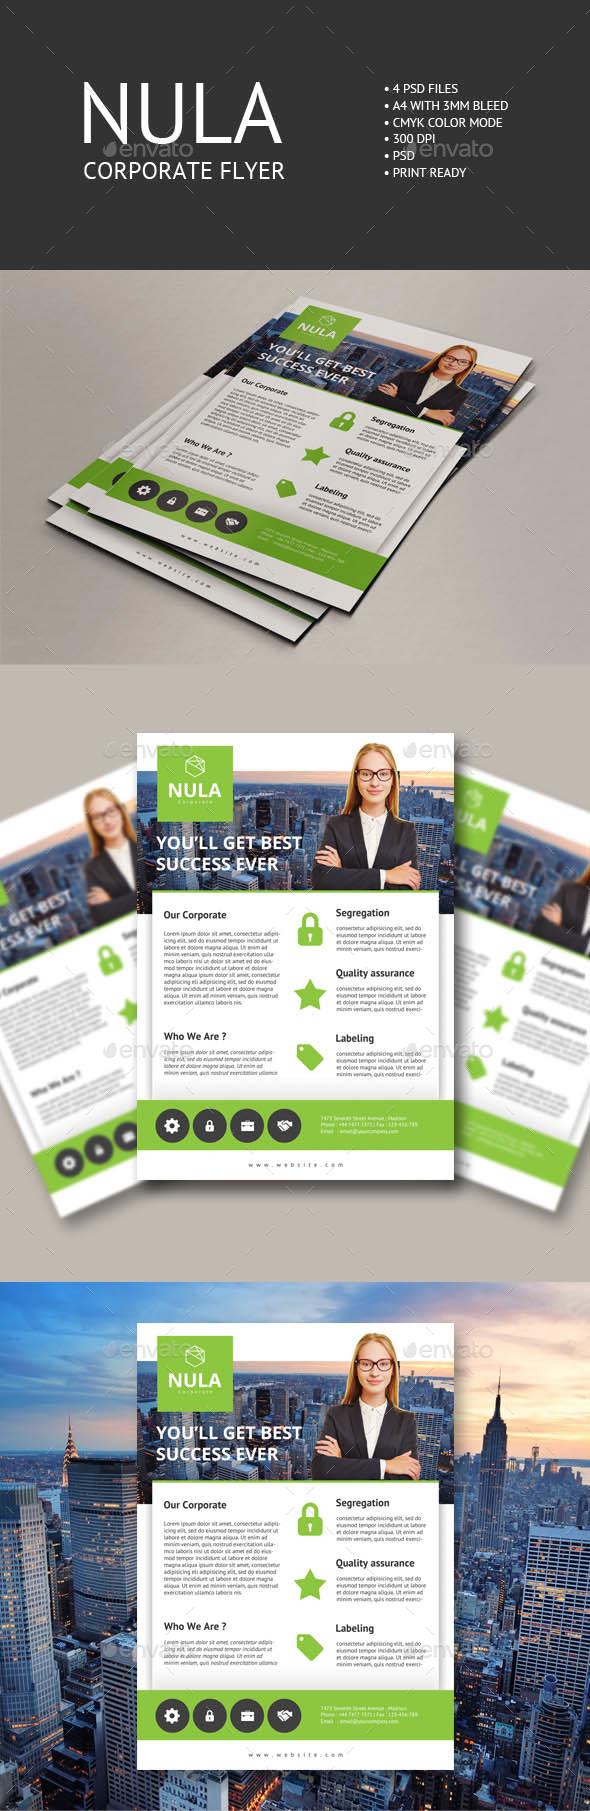 Nula Corporate Flyer 2 - Corporate Flyers